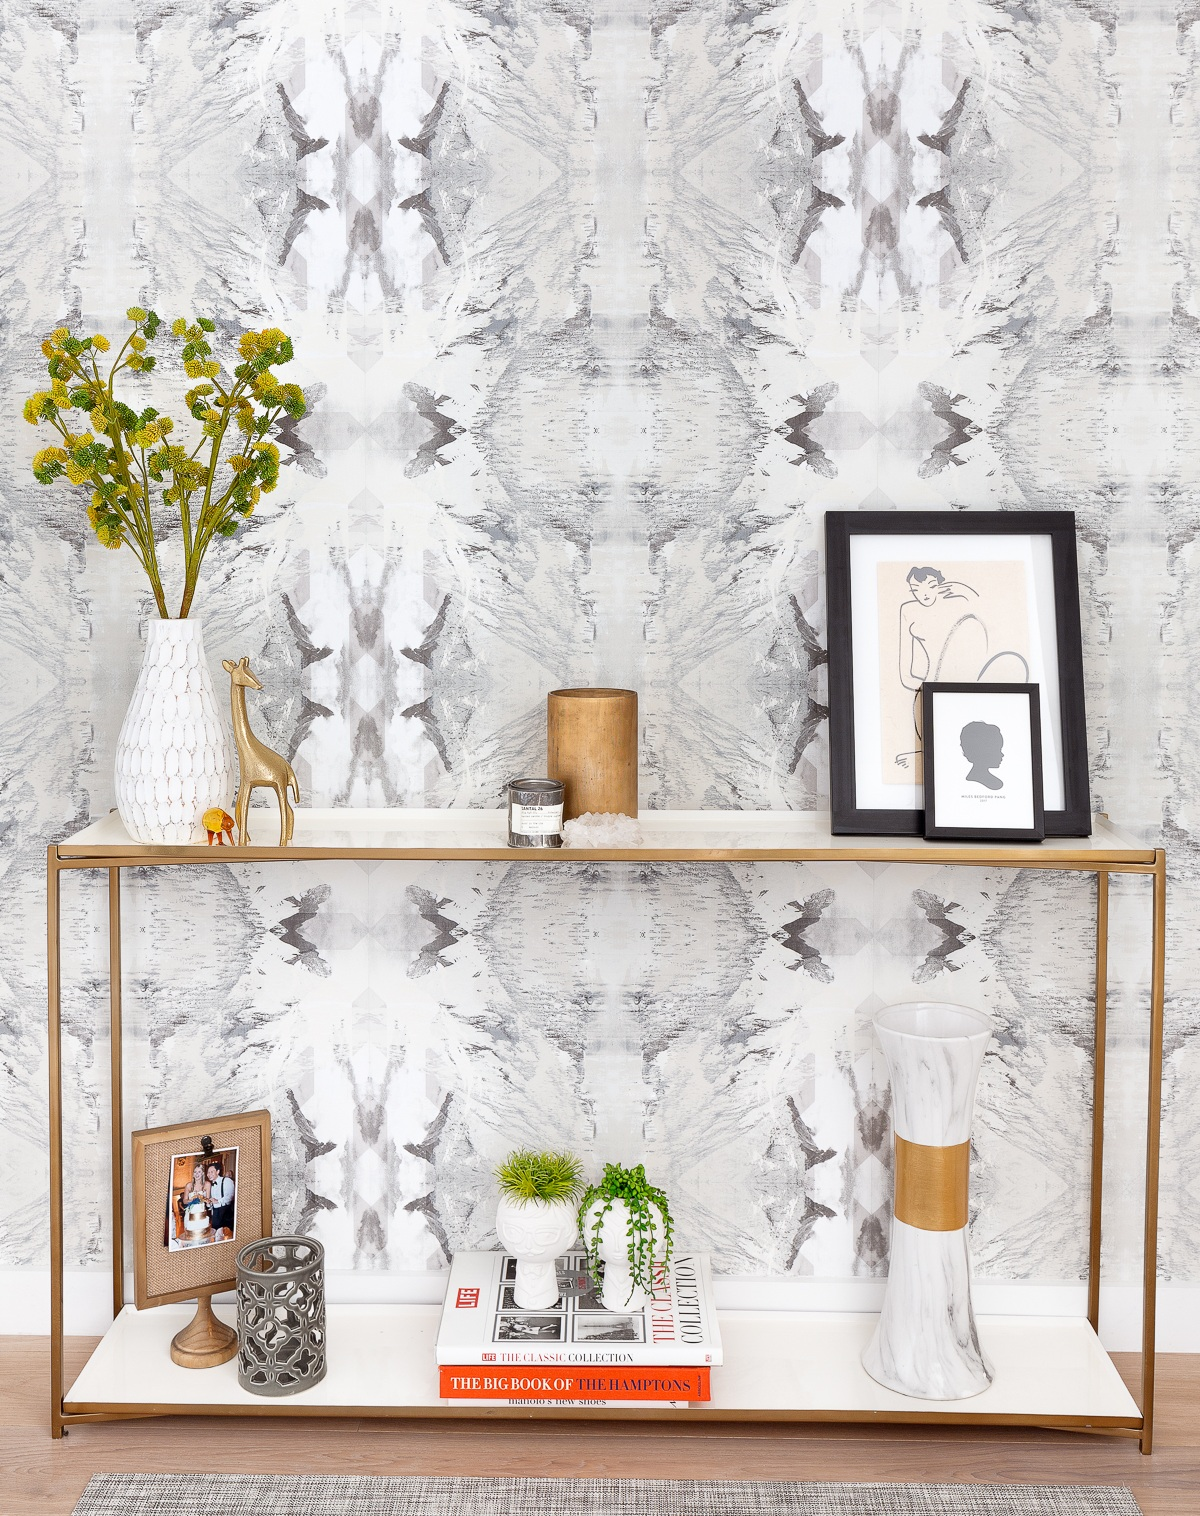 Lets talk about making a statement… this wallpaper makes for such a stunning entry. Its organic pattern brings movement welcoming you into the home. This entry is visible from every part of the great room and styled to perfection with accessories that are personal and collected.